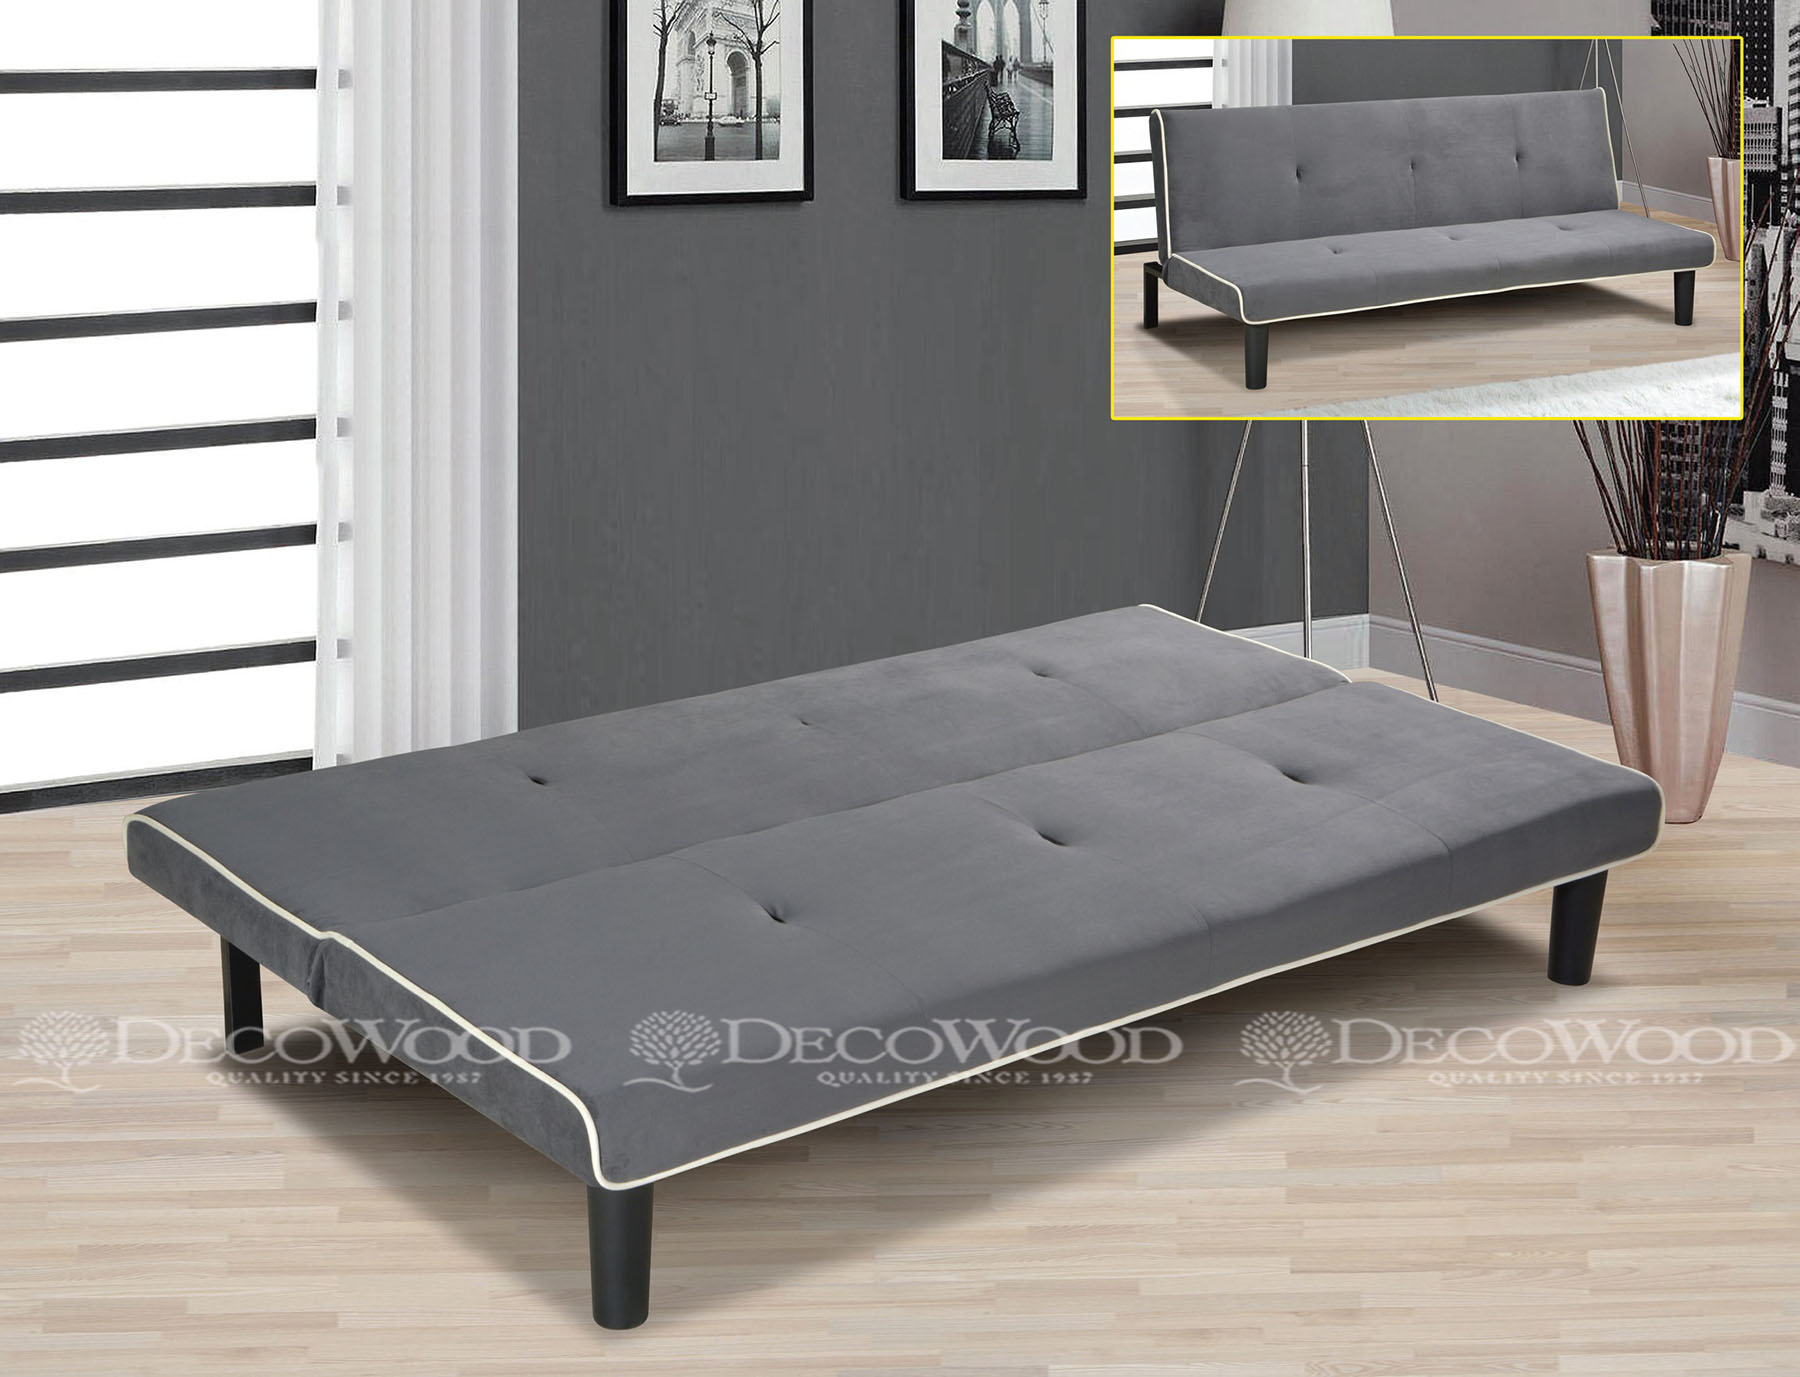 Bedroom Sofa Bed / Living Hall Sofa Bed / Office Sofa Bed / Lounge Sof